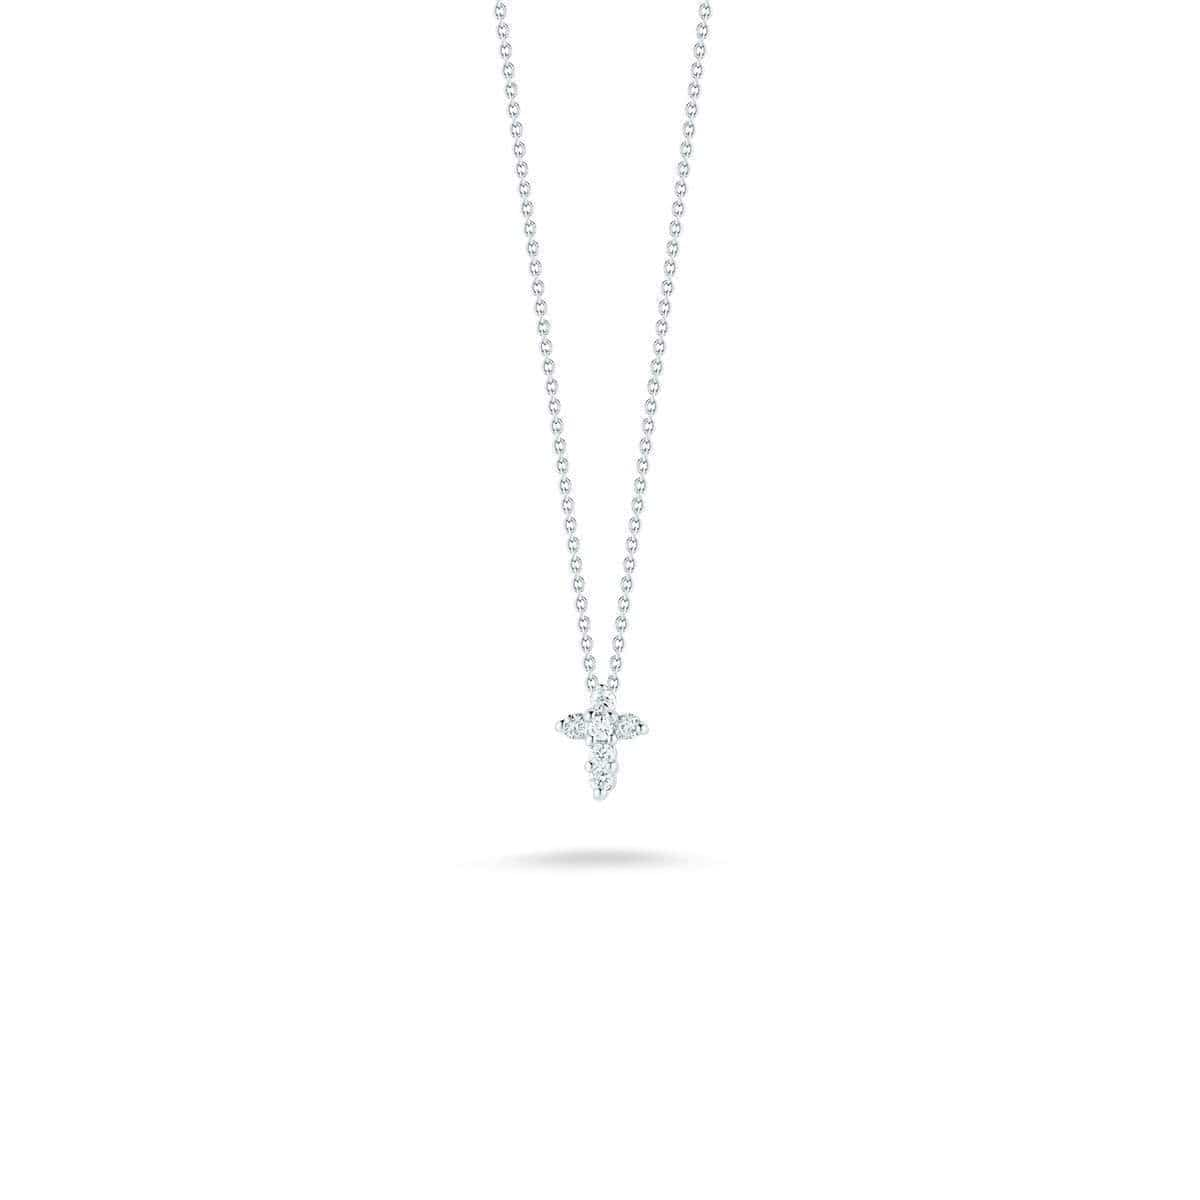 18k White Gold & Diamond Cross Necklace - 001883AWCHX0 - Roberto Coin